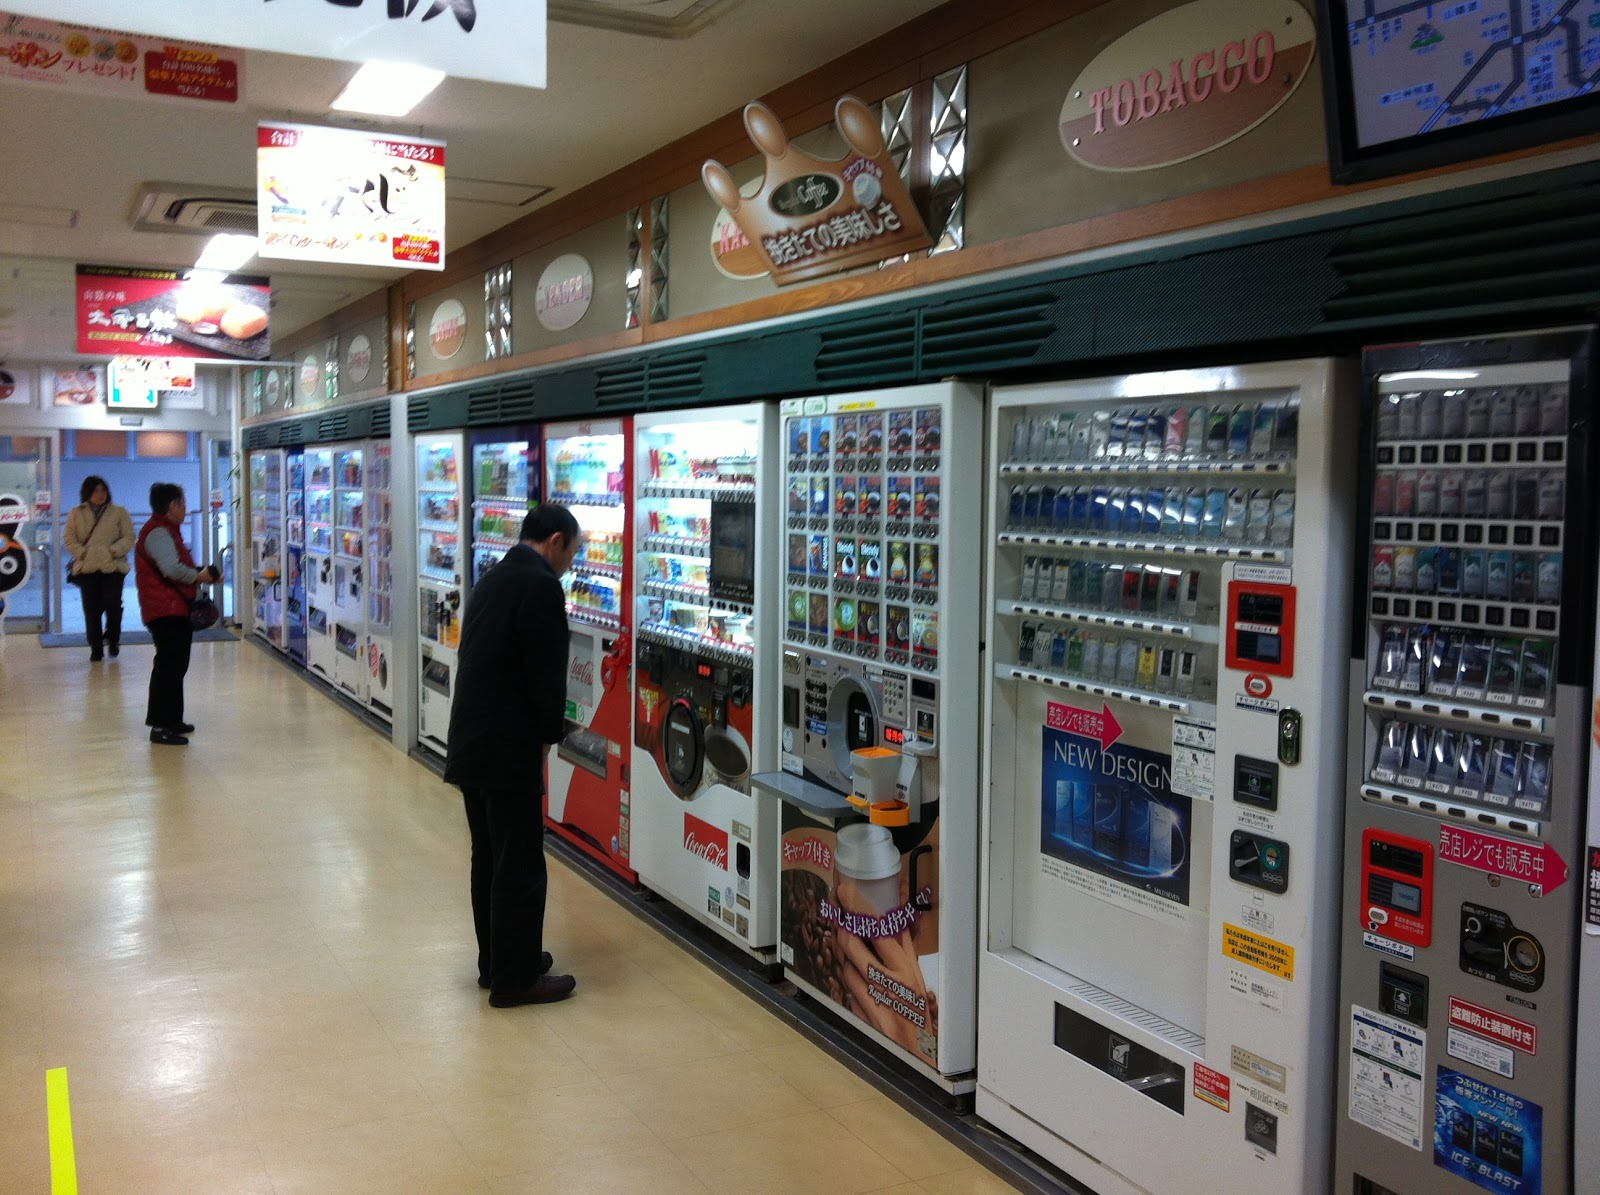 Our Man In Japan: The Truth About Japanese Vending Machines